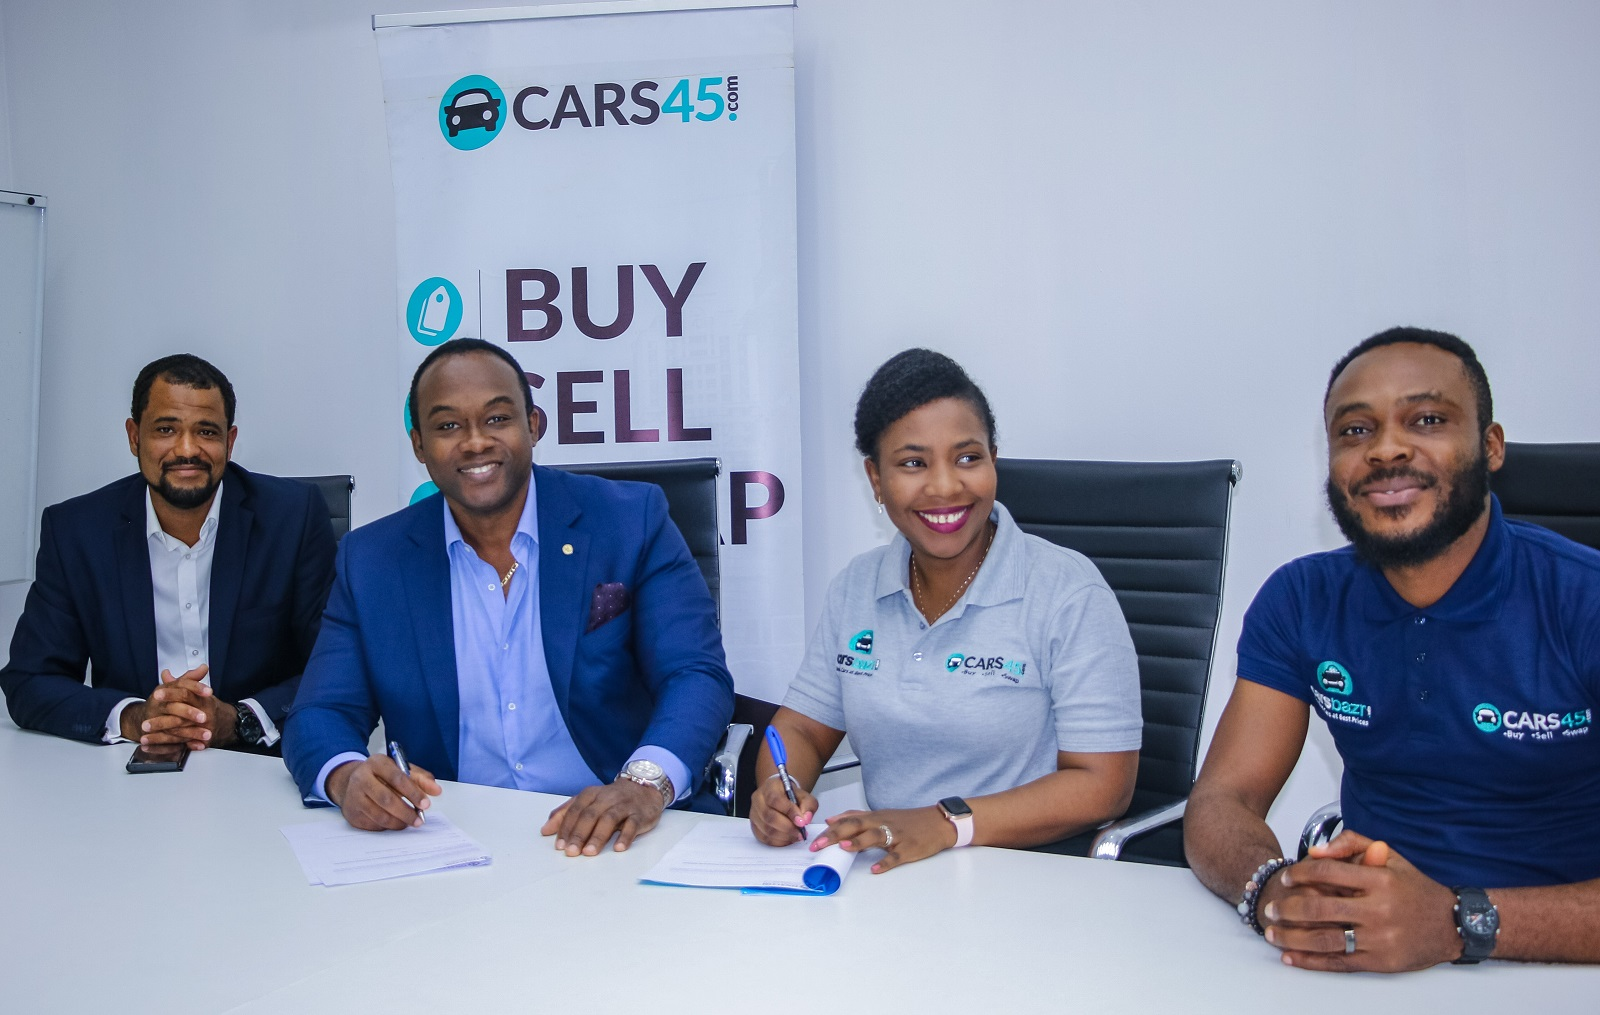 Cars45 boosts reality TV show, partners Cars and Stars - Brand Spur